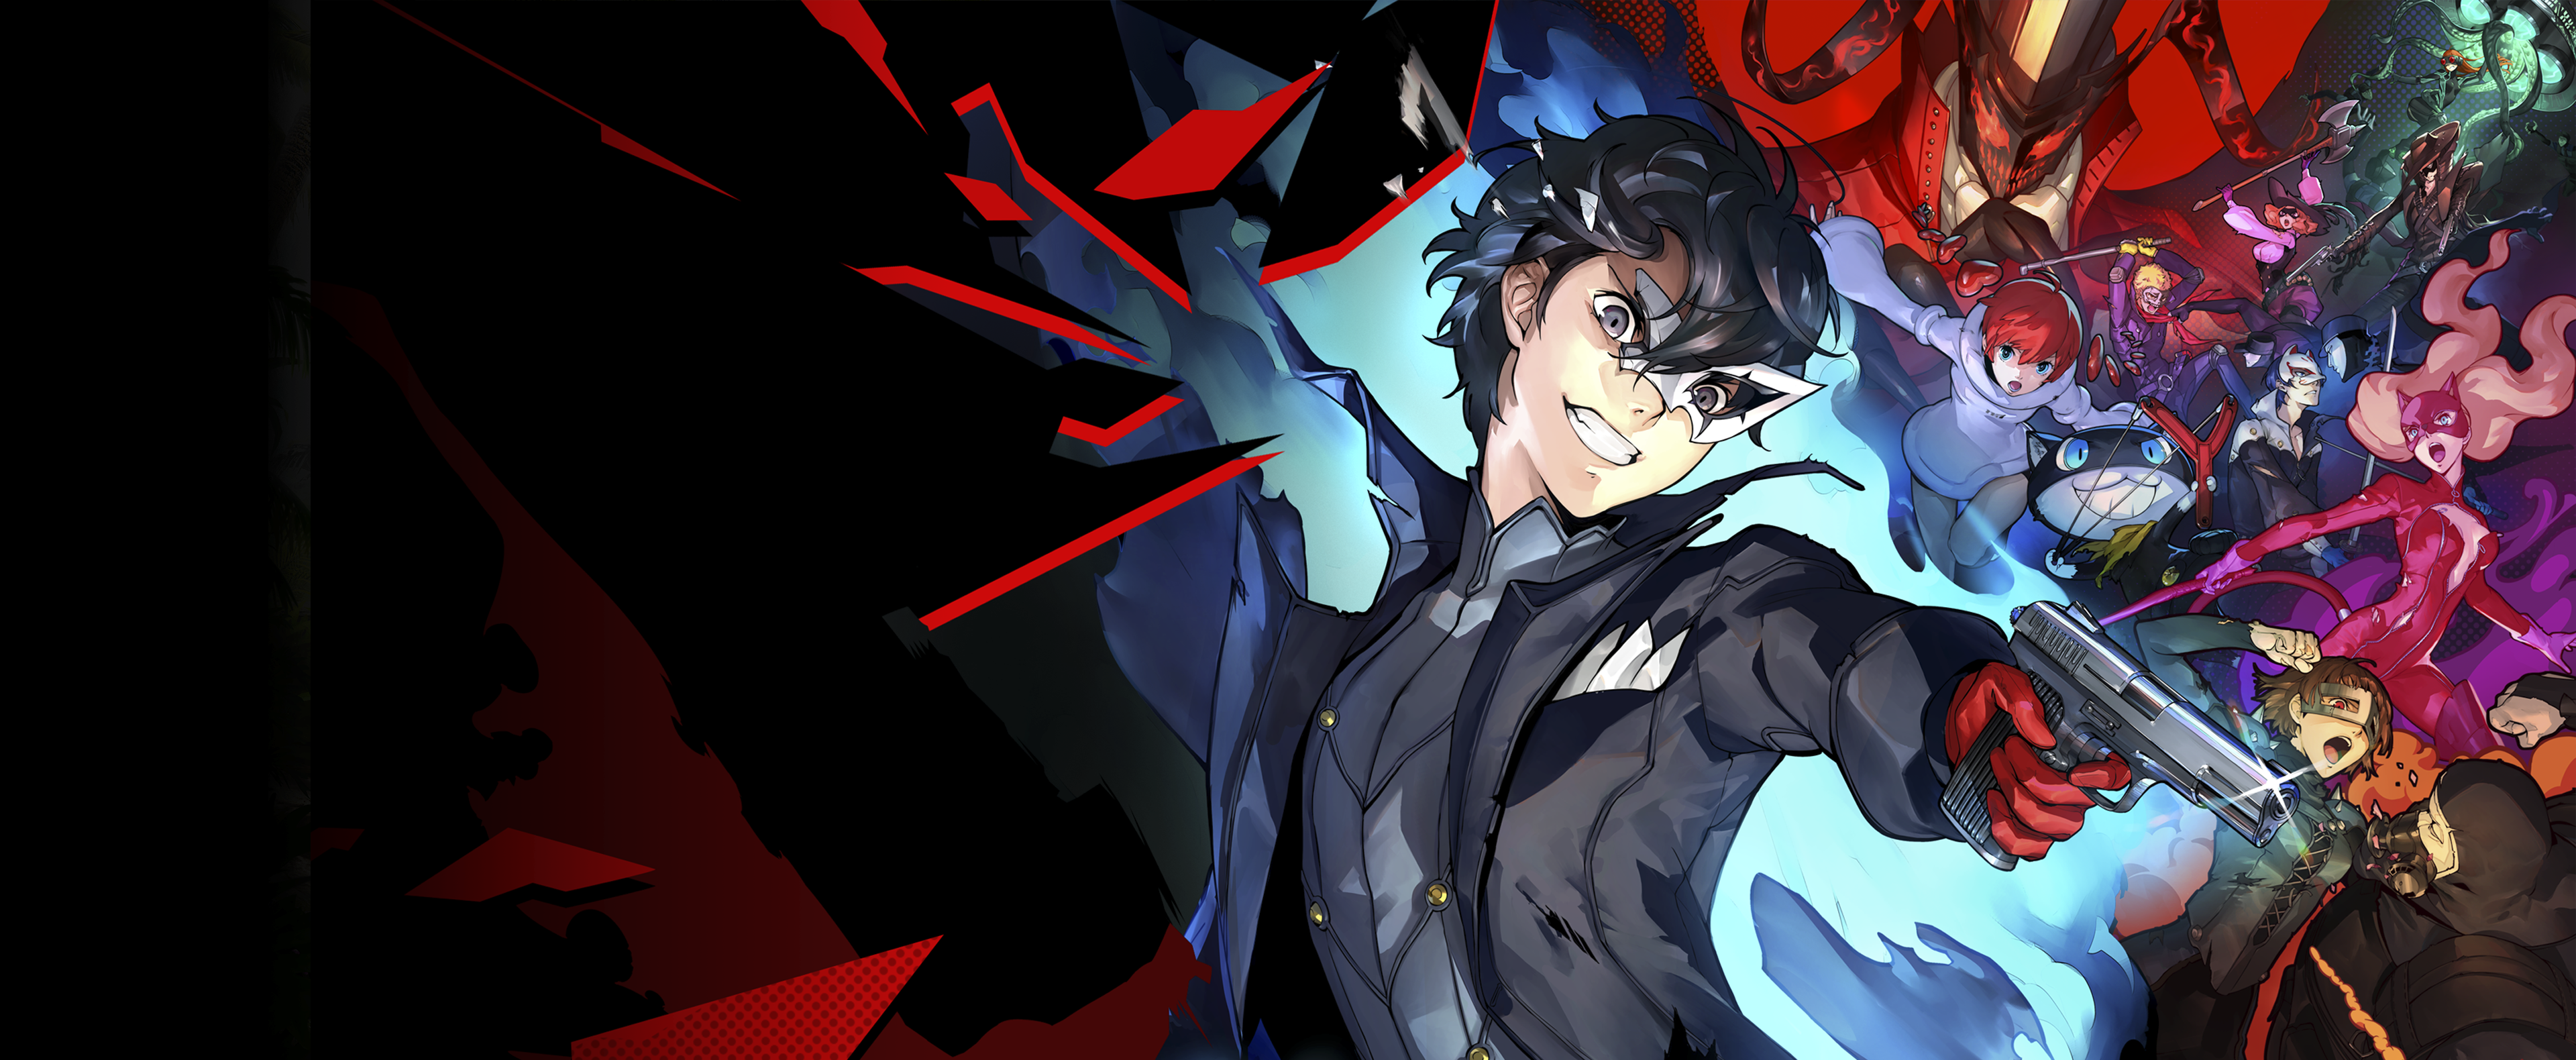 Persona 5 Strikers - immagine principale